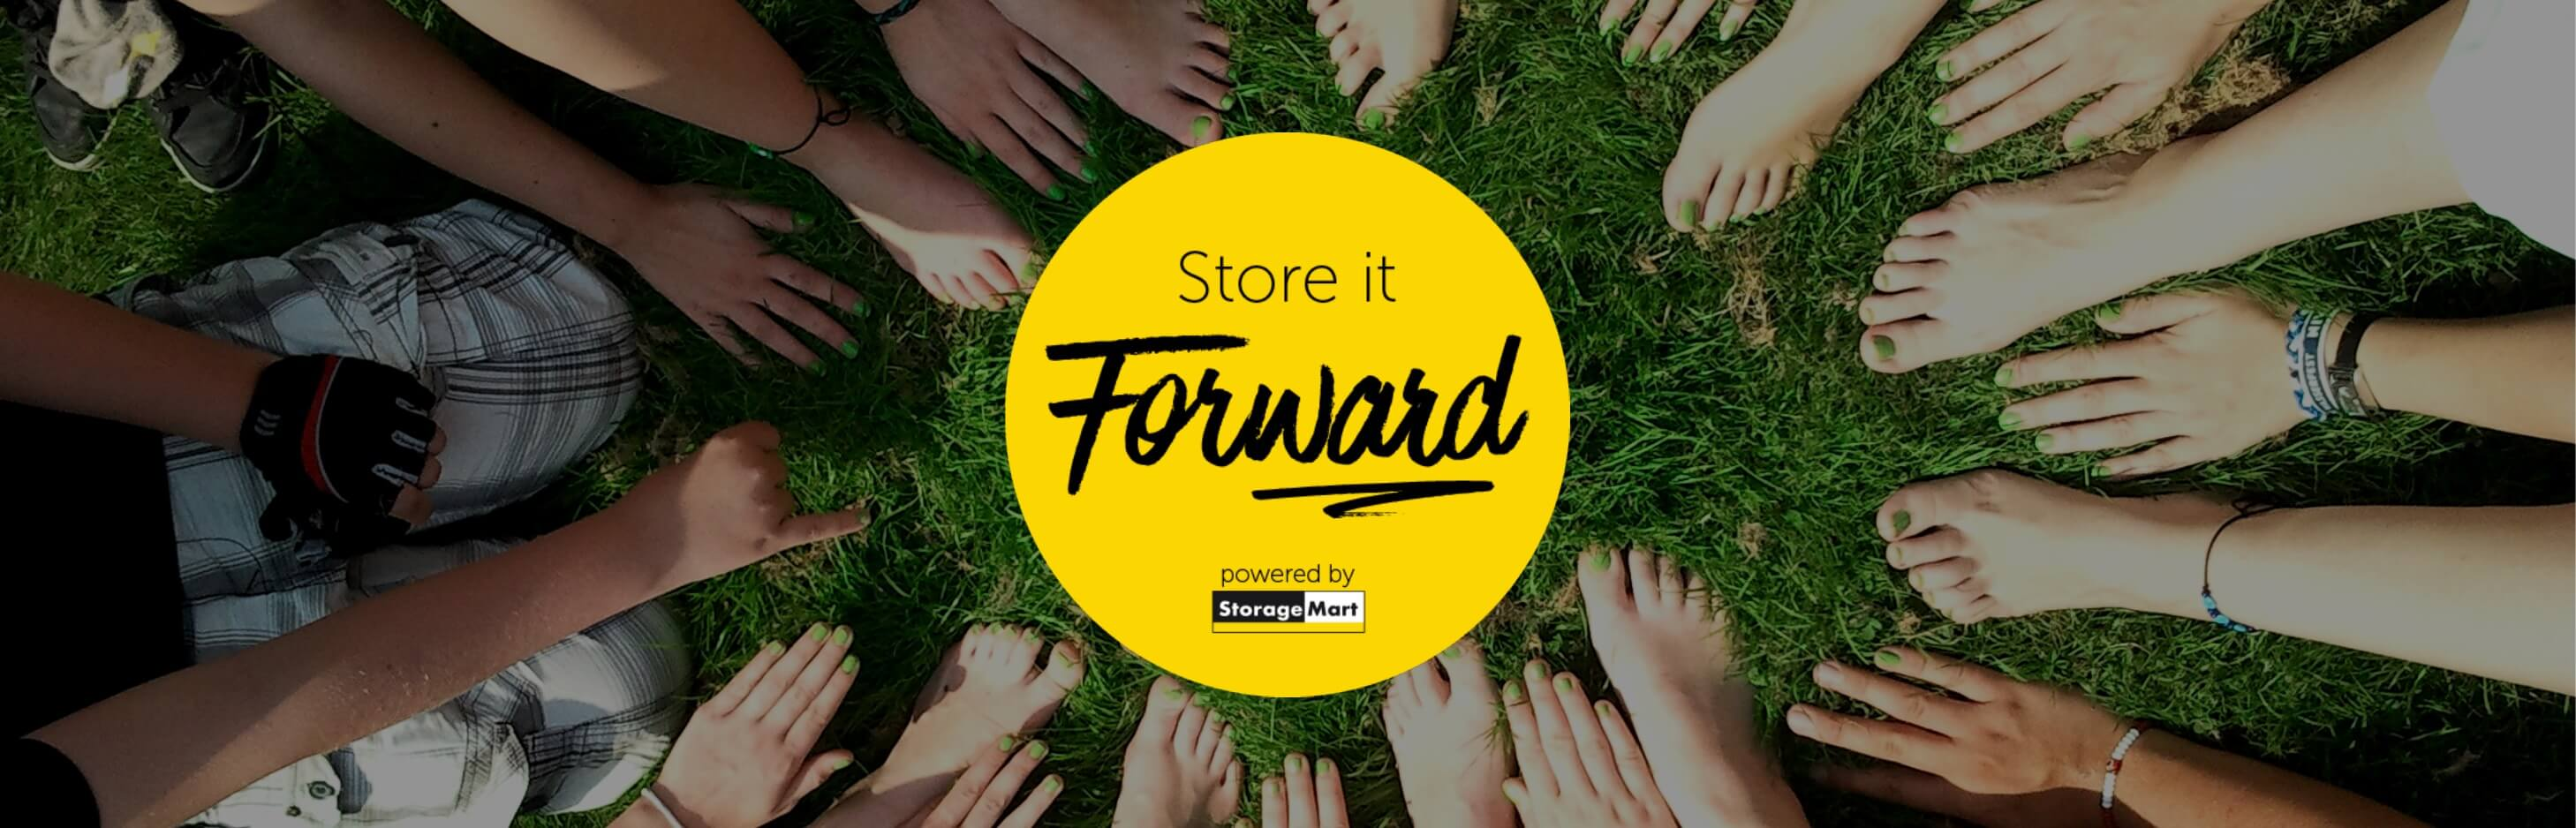 Store it forward program